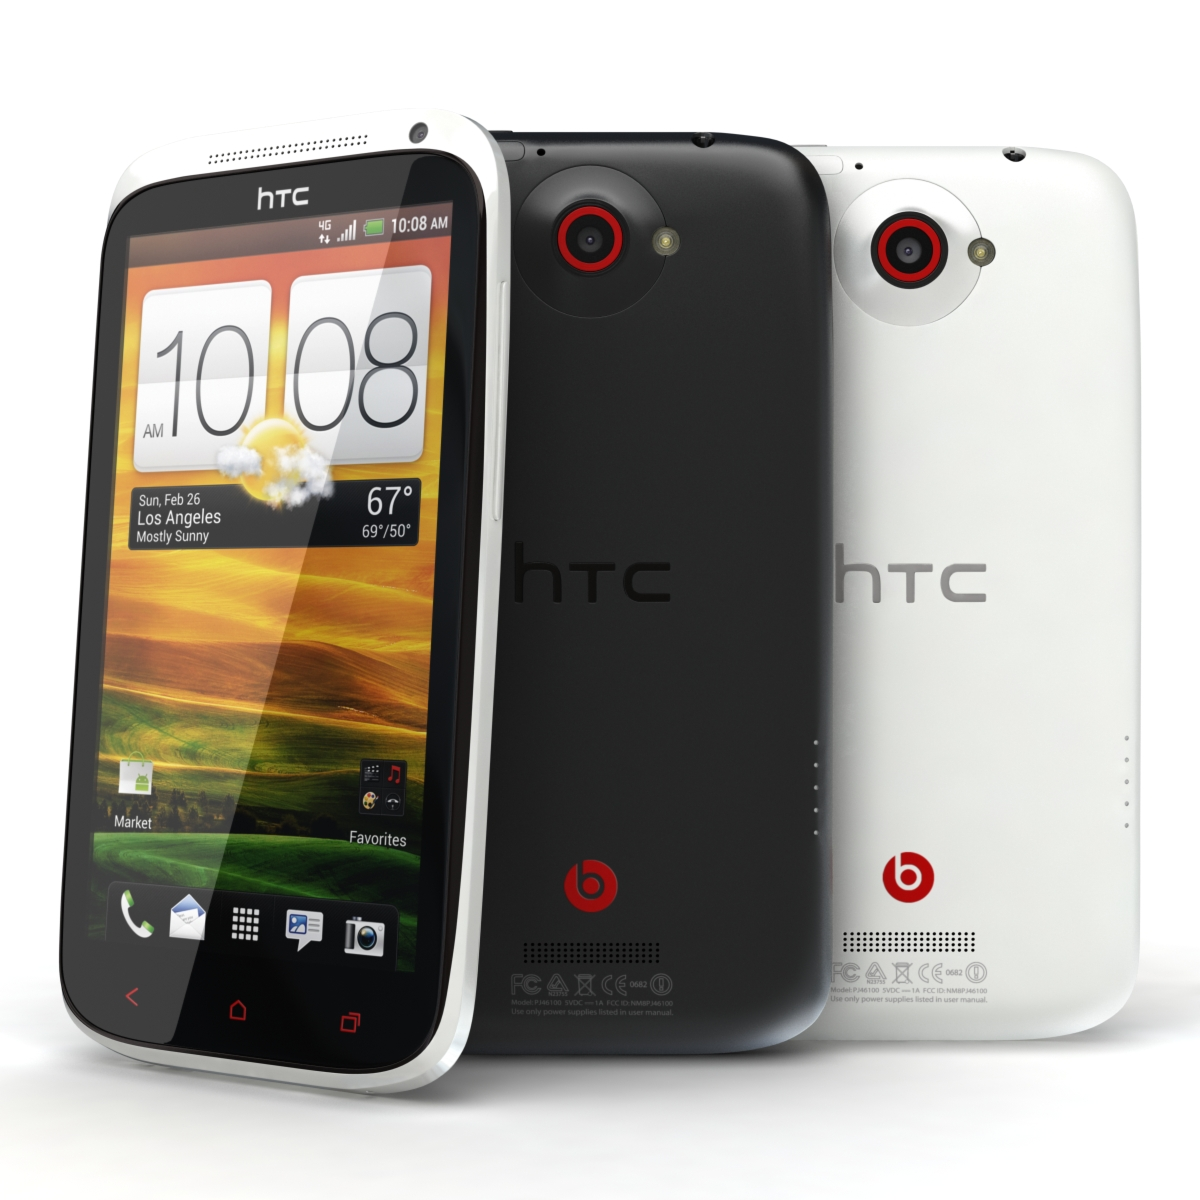 htc one x + crno-bijelo 3d model 3ds max fbx c4d lwo obj 151431